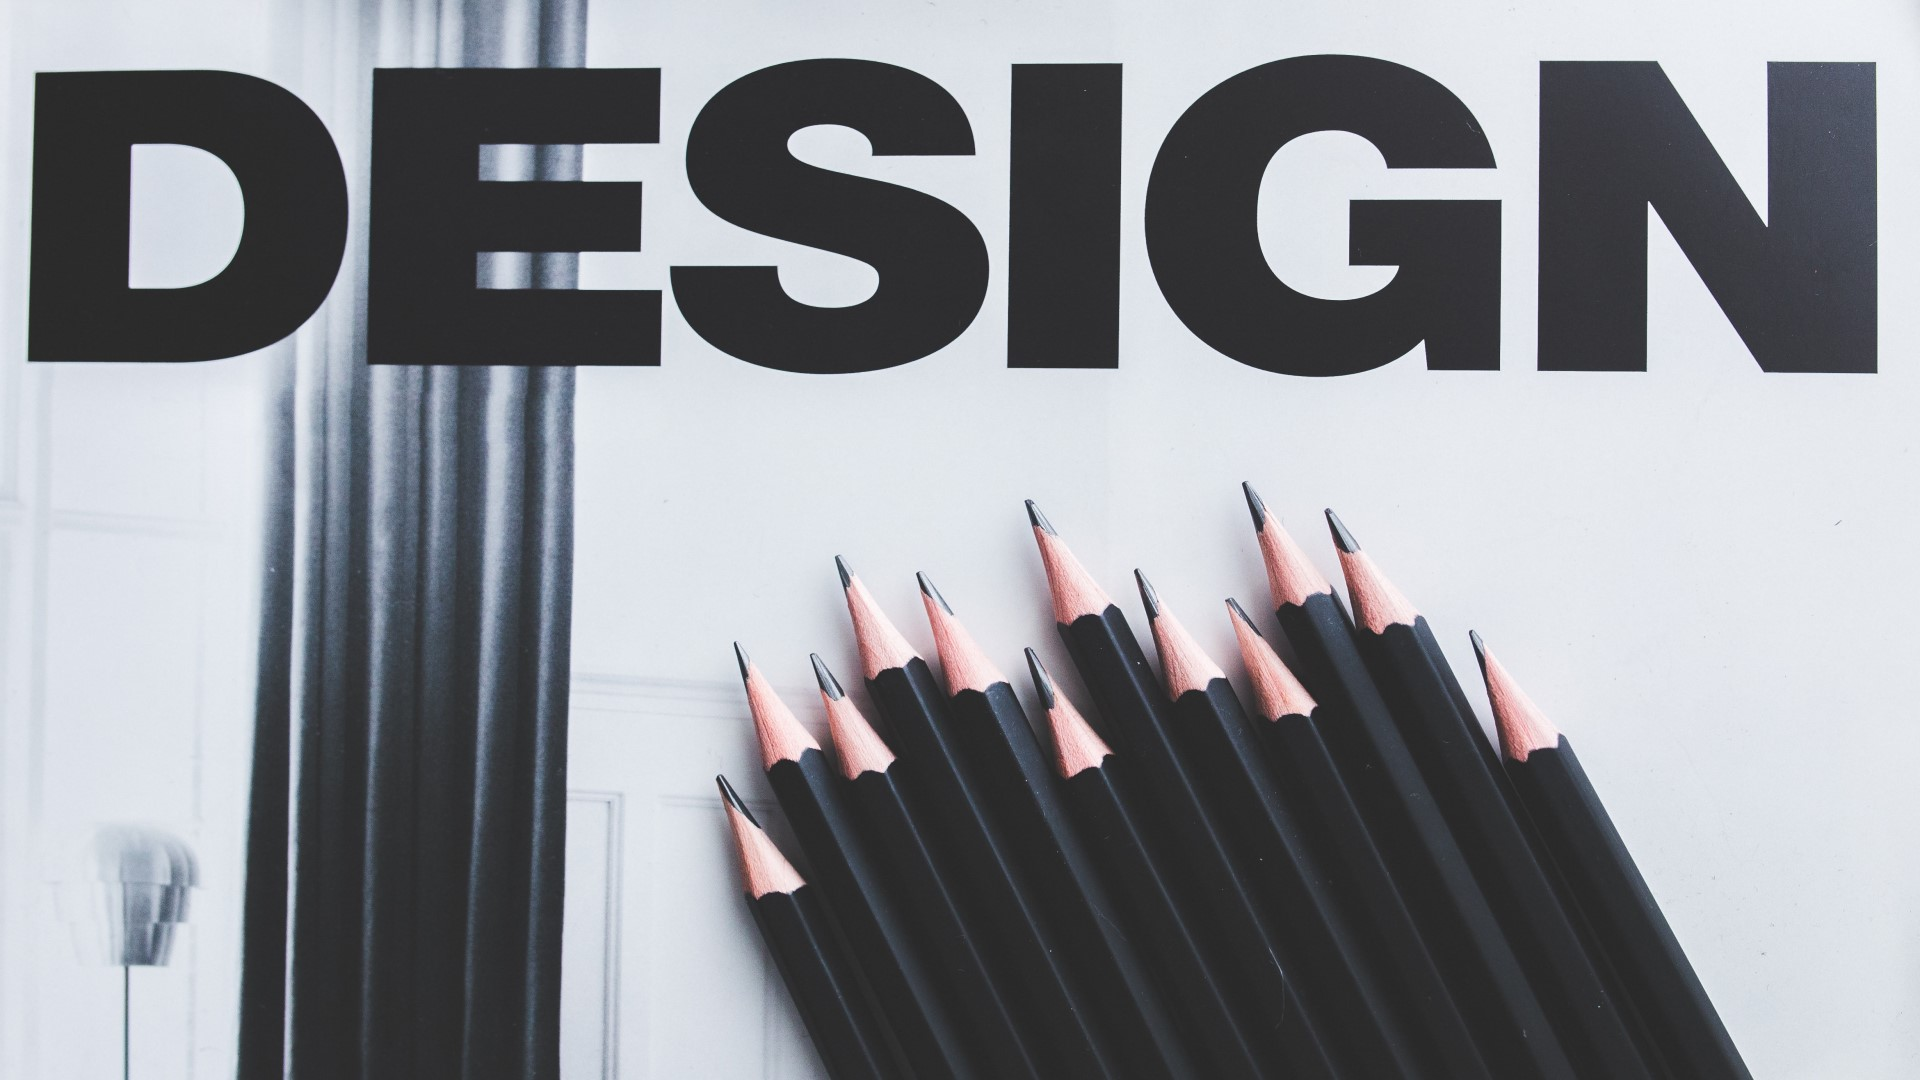 The design is a part of your Brand Identity.